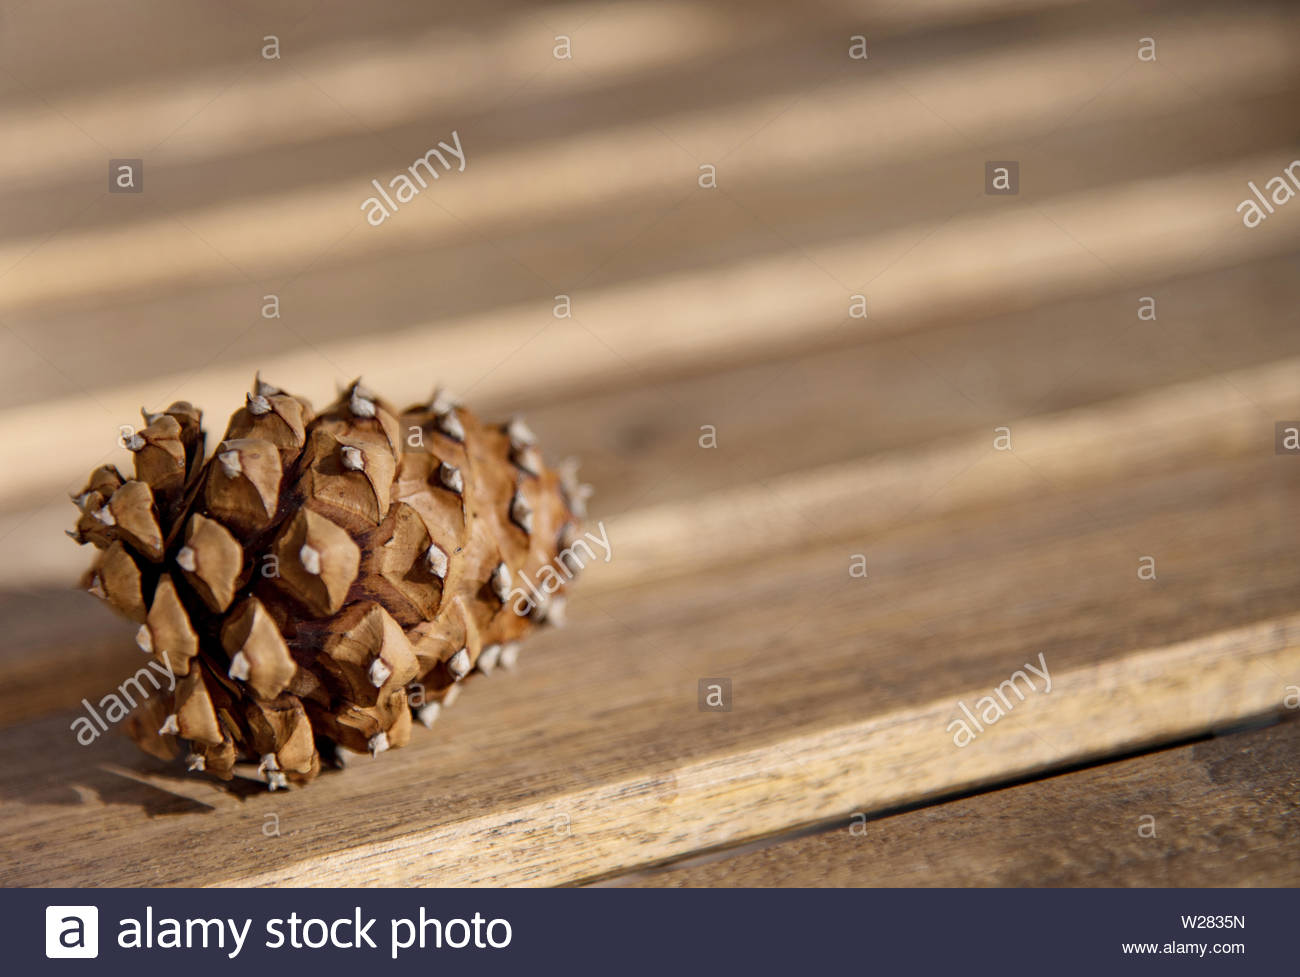 Pine cone on a slatted table - Stock Image